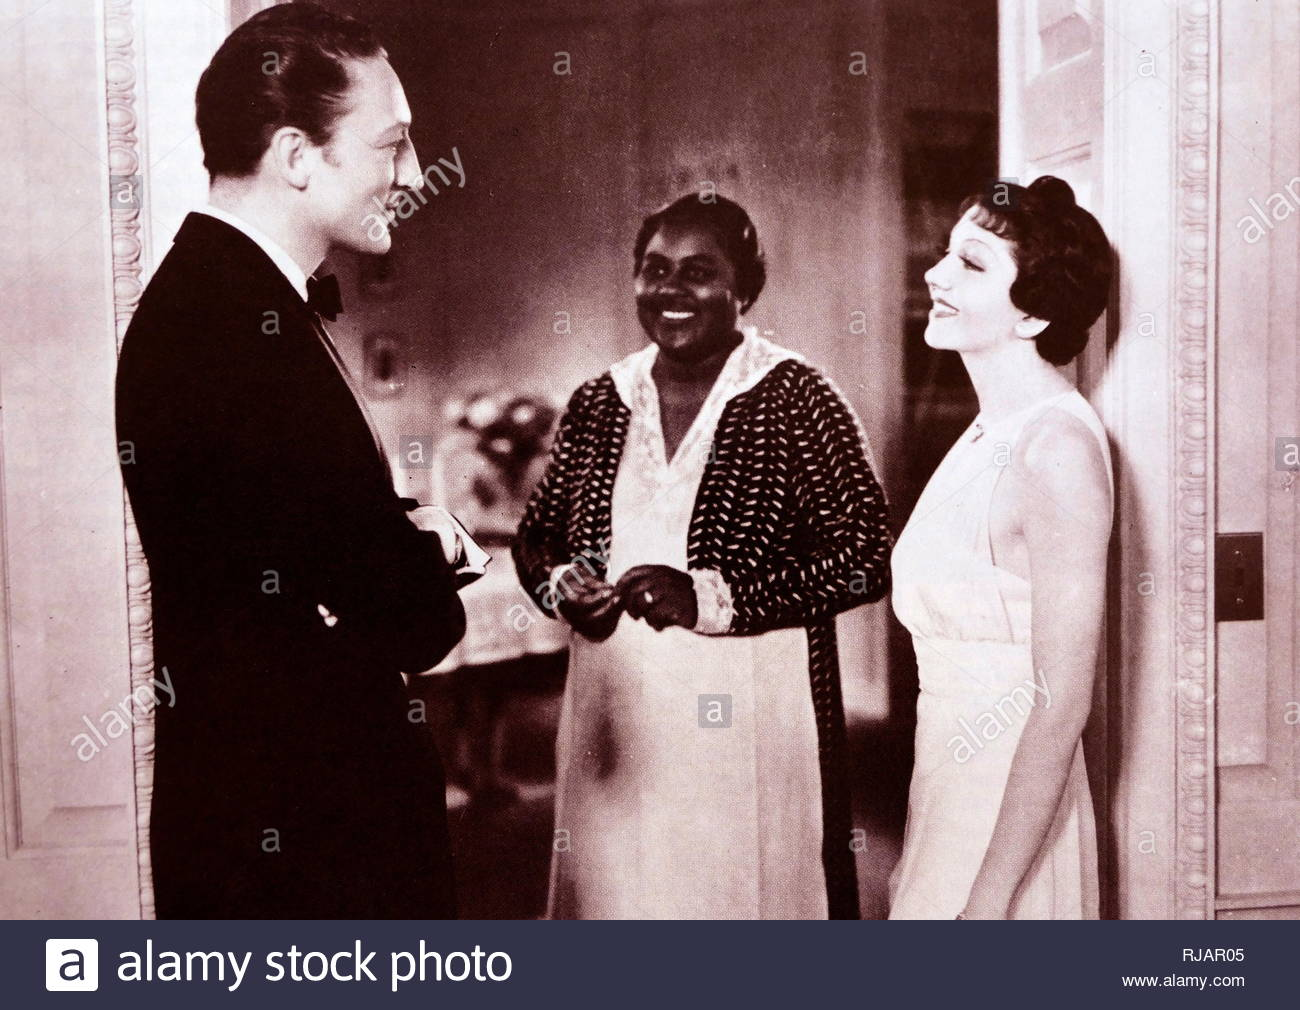 Imitation of Life is a 1934 American drama film directed by John M. Stahl. The screenplay by William Hurlbut, based on Fannie Hurst's 1933 novelo. The film stars Claudette Colbert, Warren William. In this scened Hattie McDaniel  appears with Warren William and Claudette Colbert. Mc Daniel was a pioneer African American actress - Stock Image